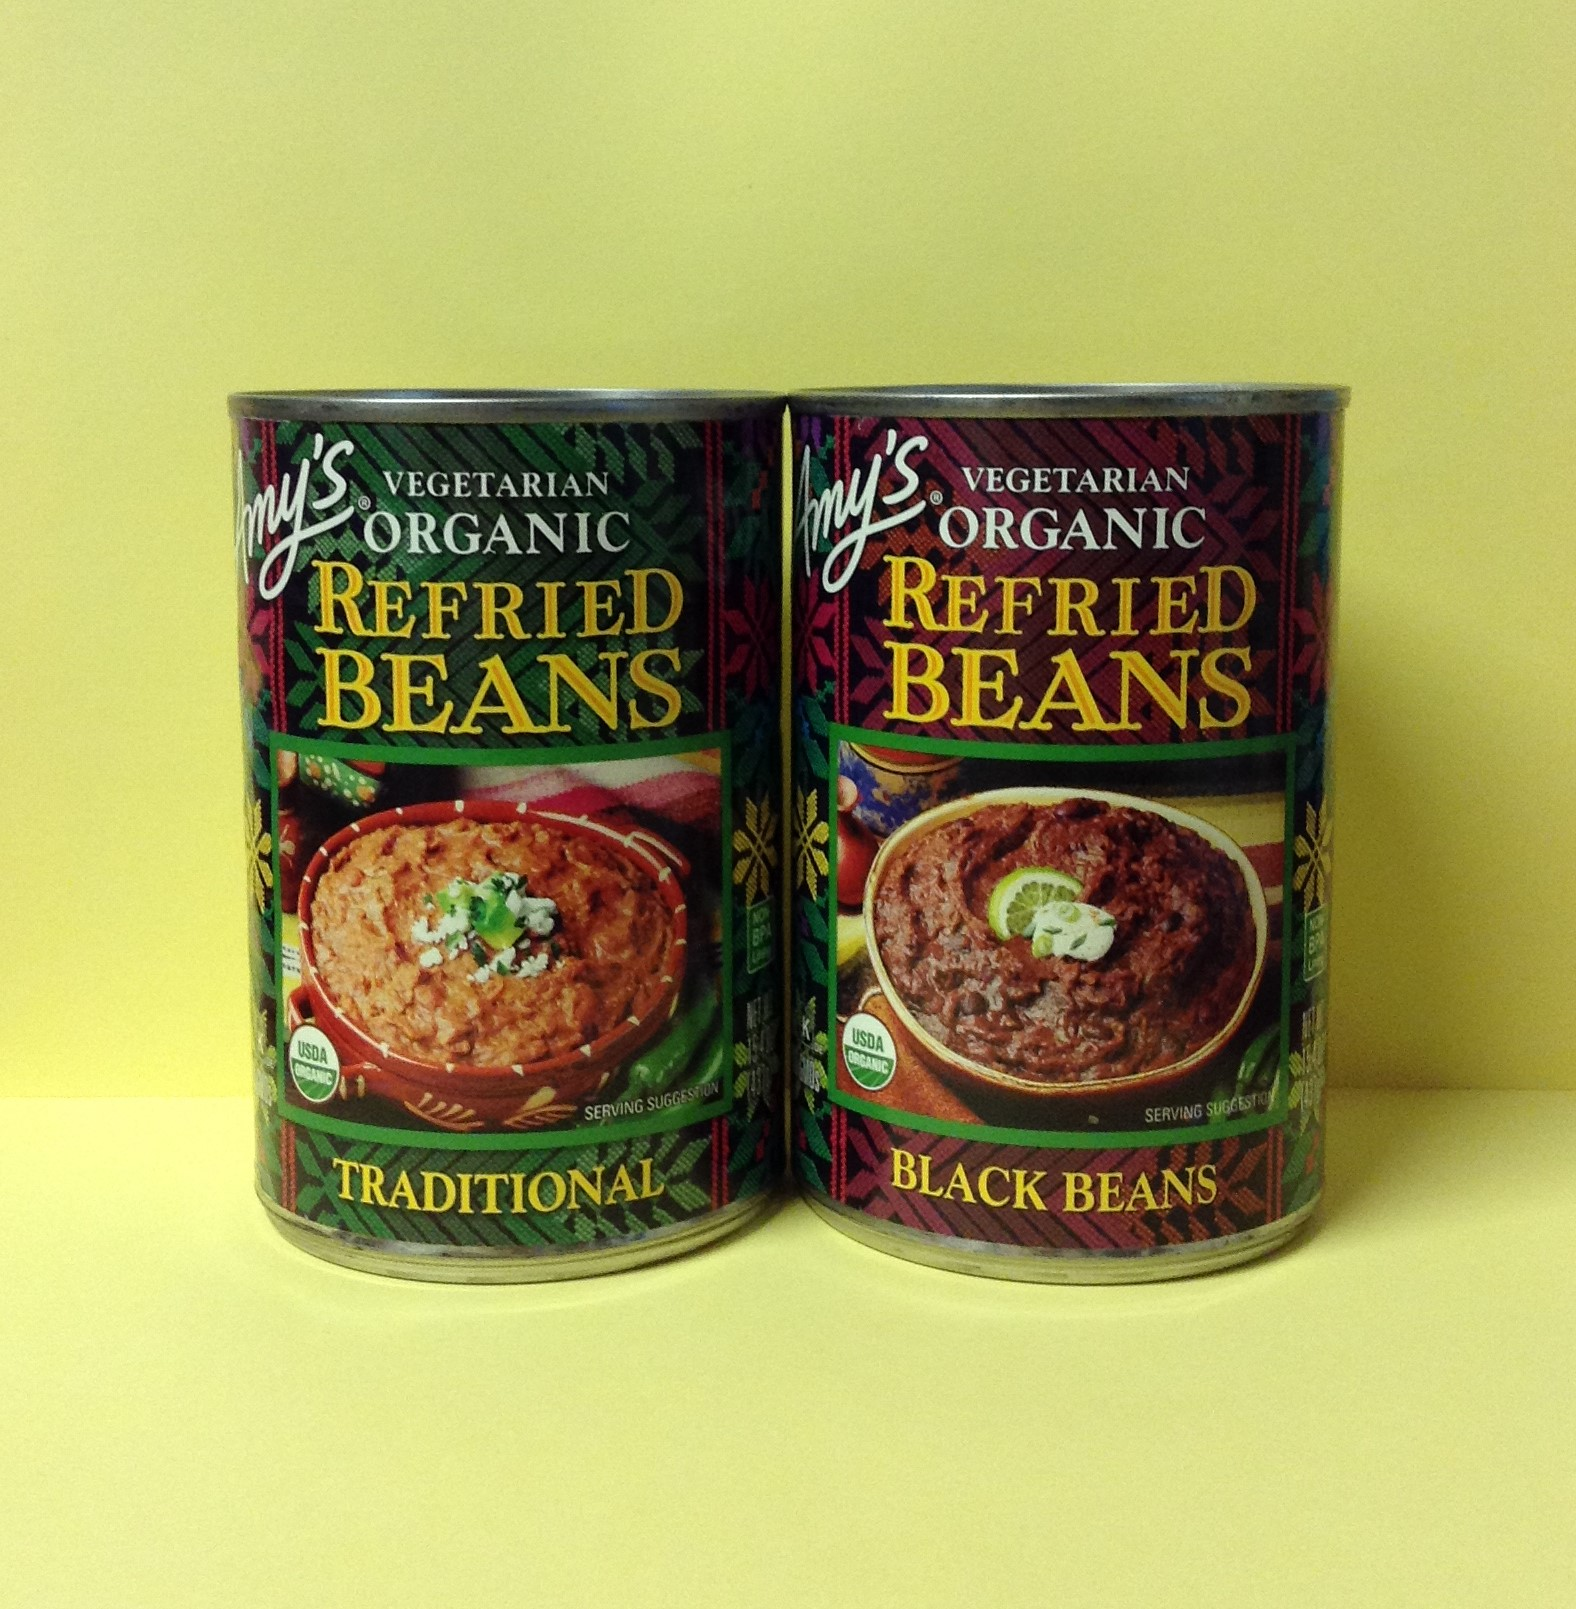 AMY'S Organic Vegetarian Refried Beans